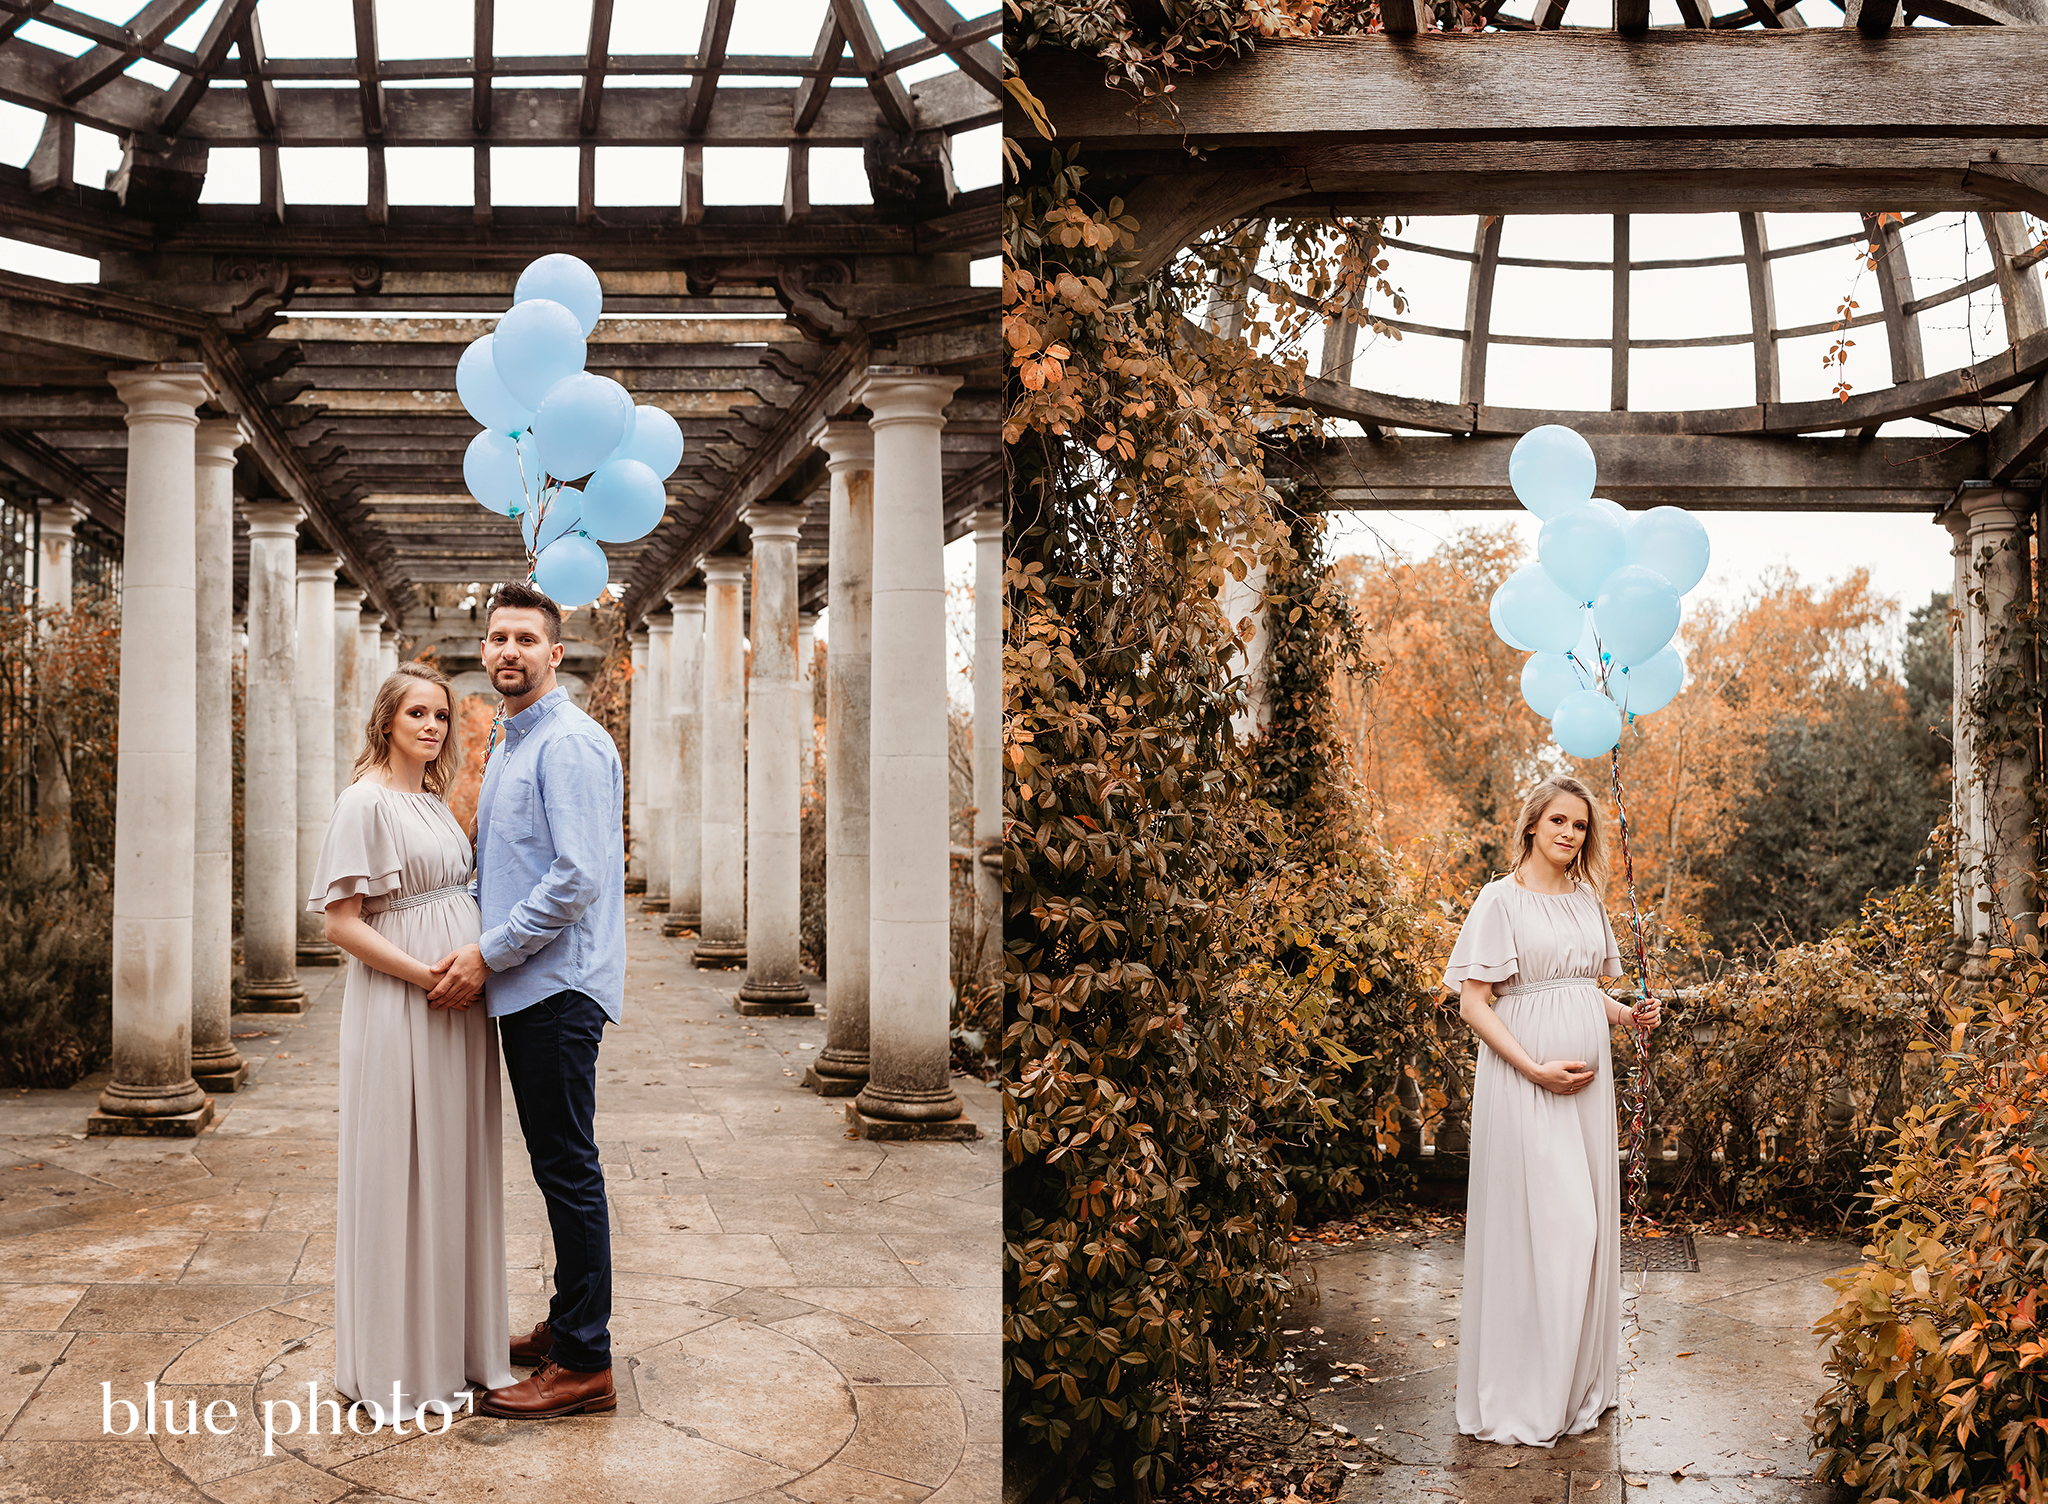 Dominika and her autumn maternity session at Hill Garden and Pergola, North London